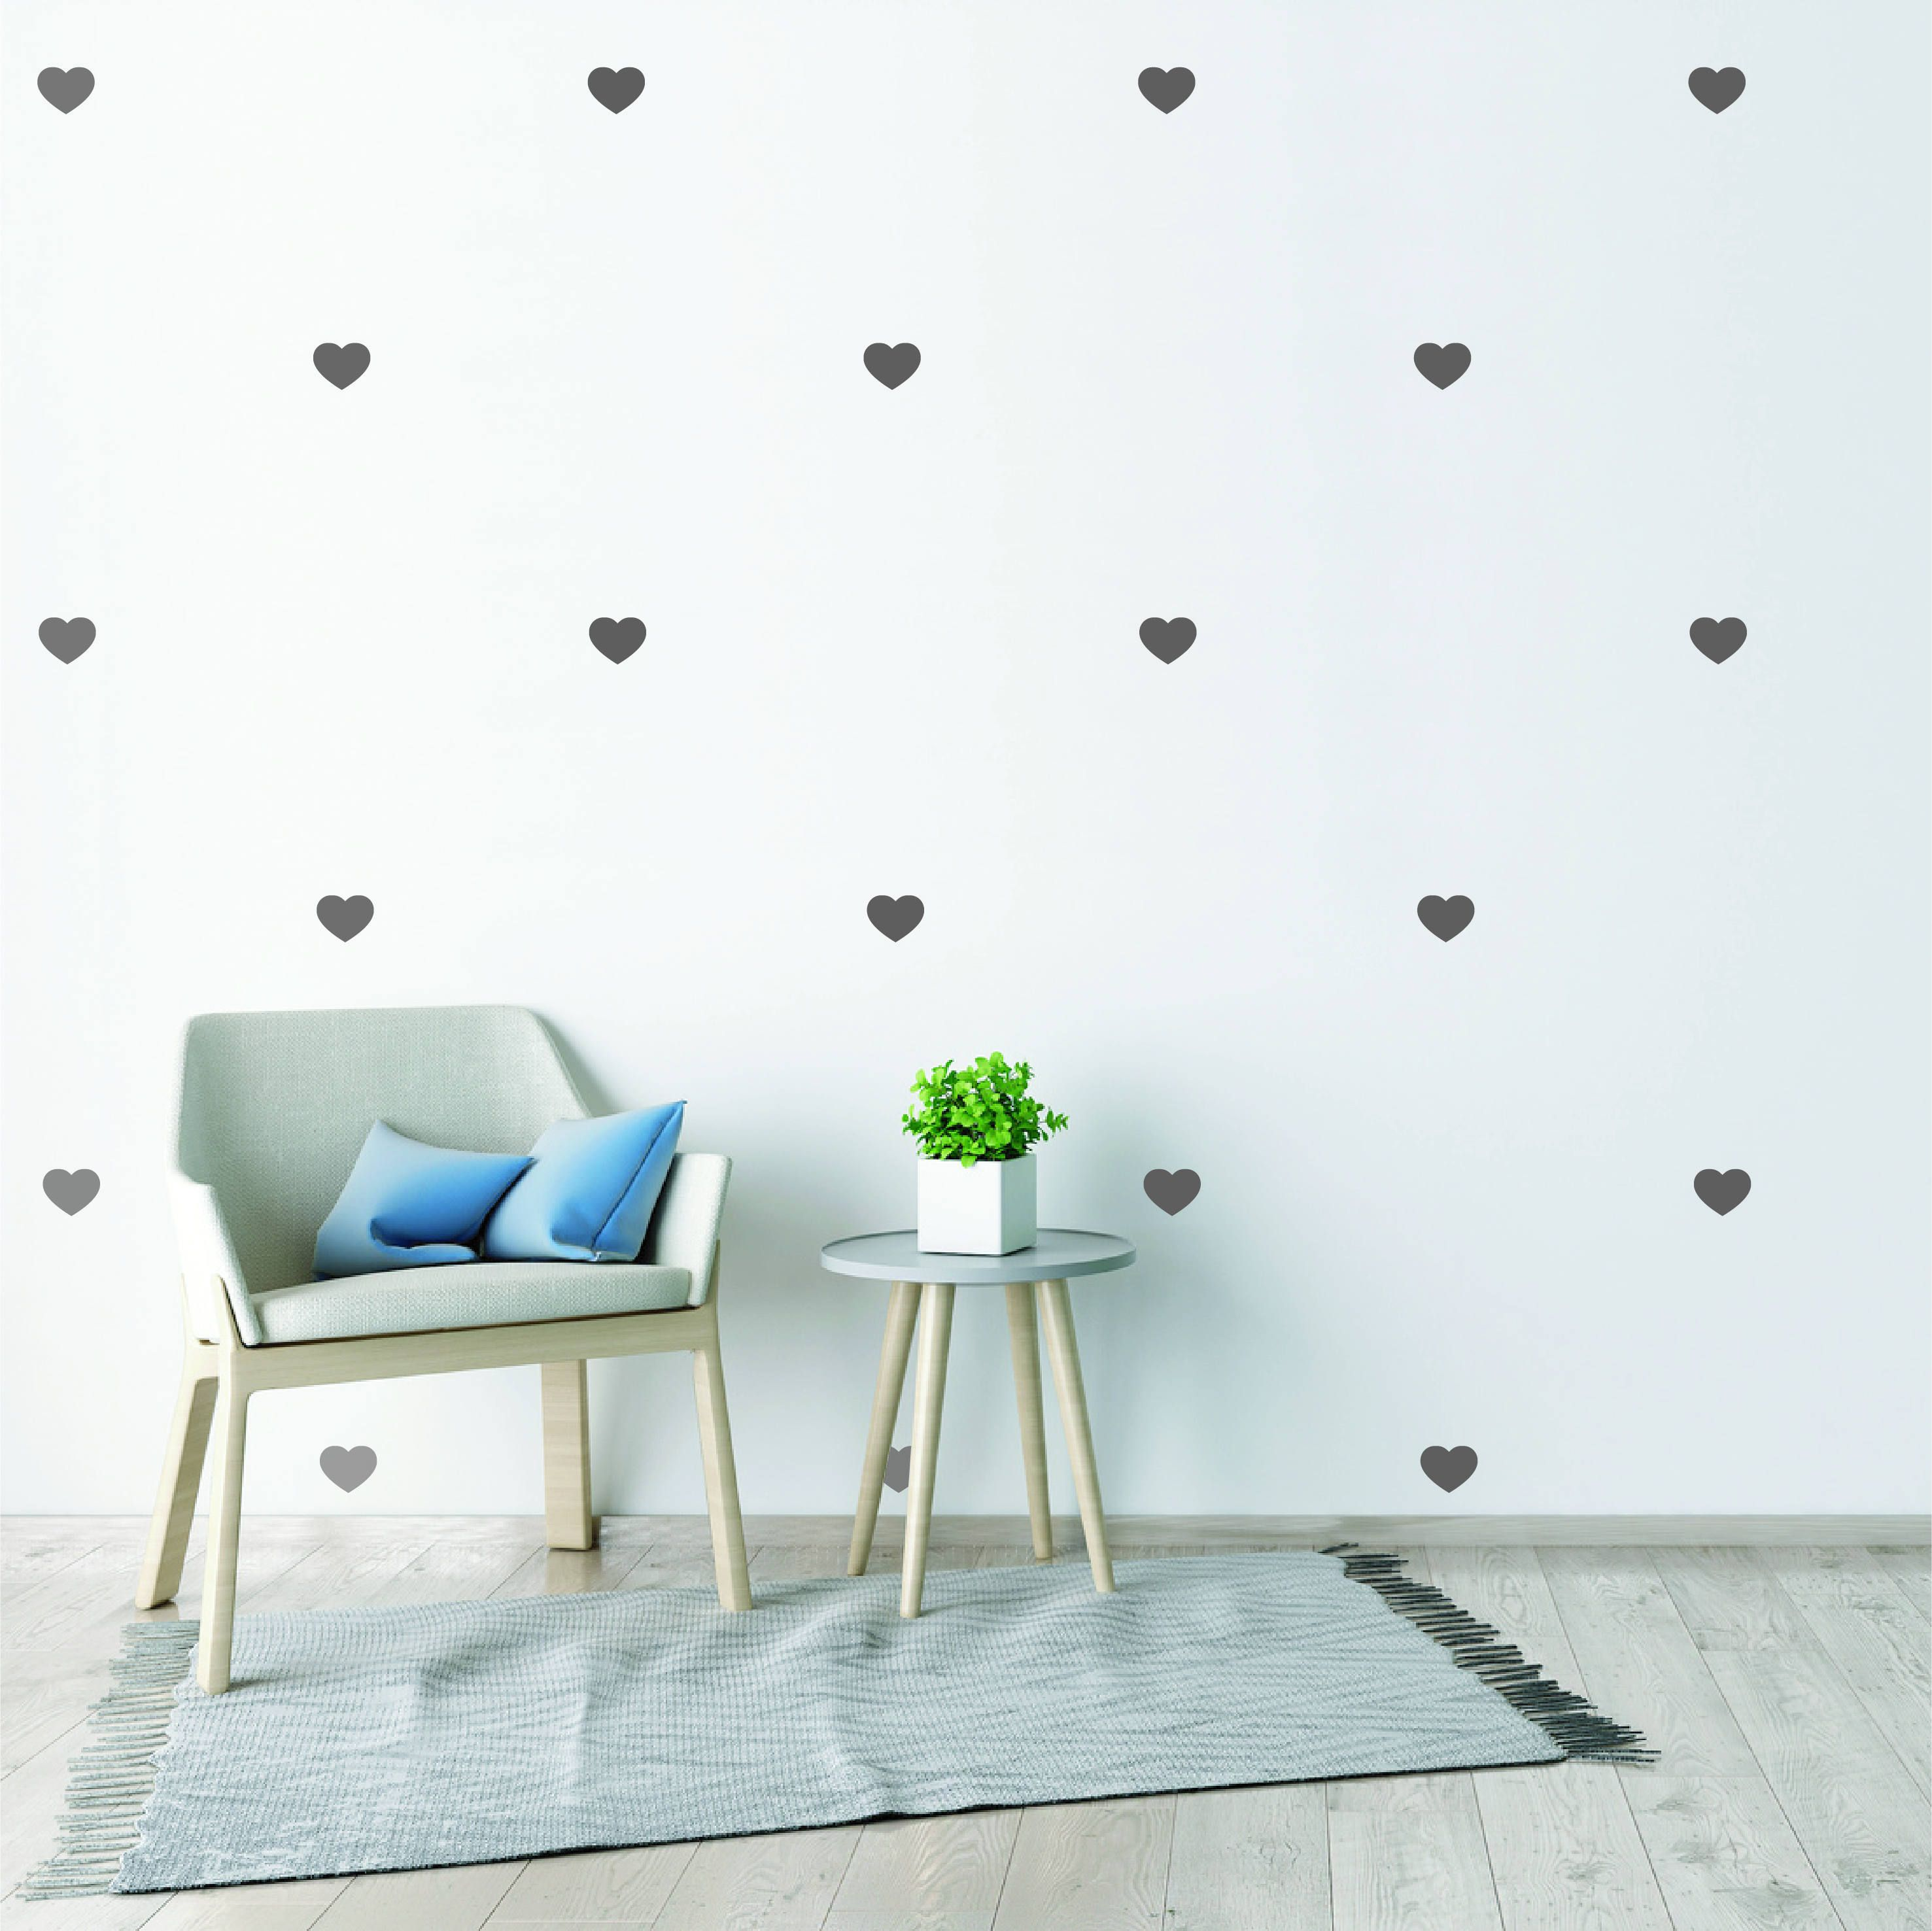 Love Heart Wall Stickers Love Heart Pattern Cute Nursery Wall Decals Kids Room Wall Decor Babies Room Wa Kids Room Wall Decor Kids Room Wall Decals Round Decor